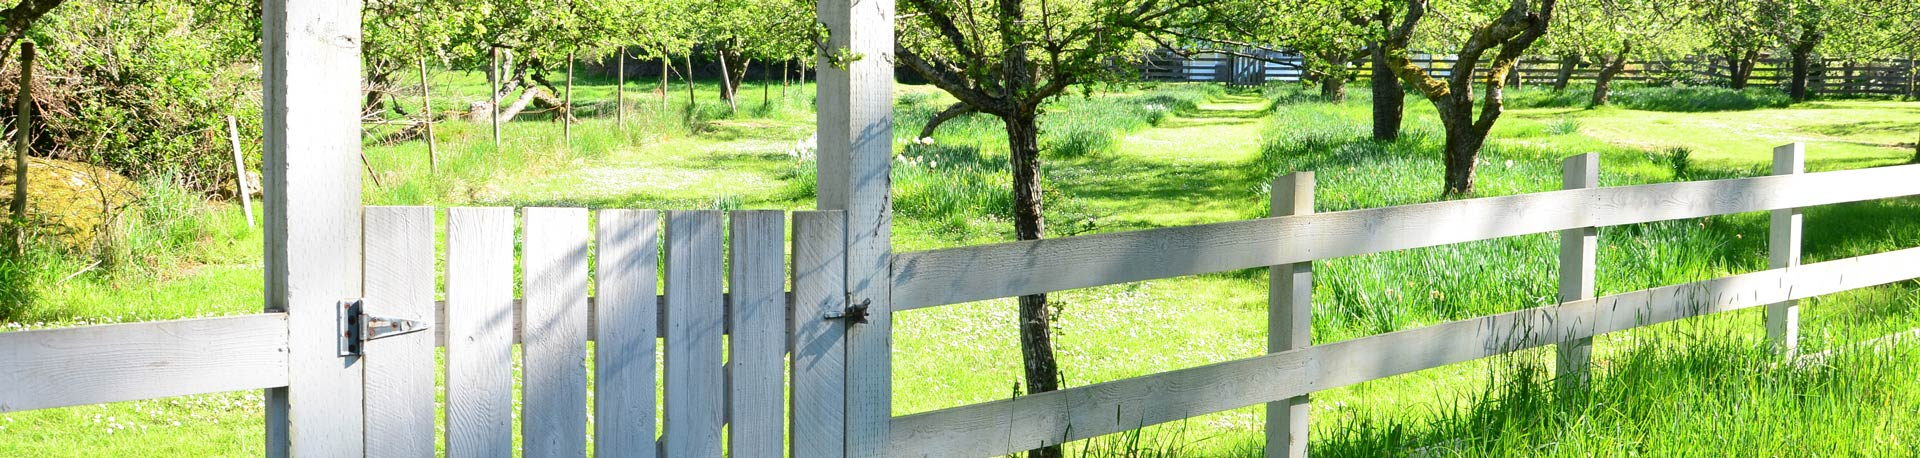 White picket fence with gate leading into a green orchard of trees